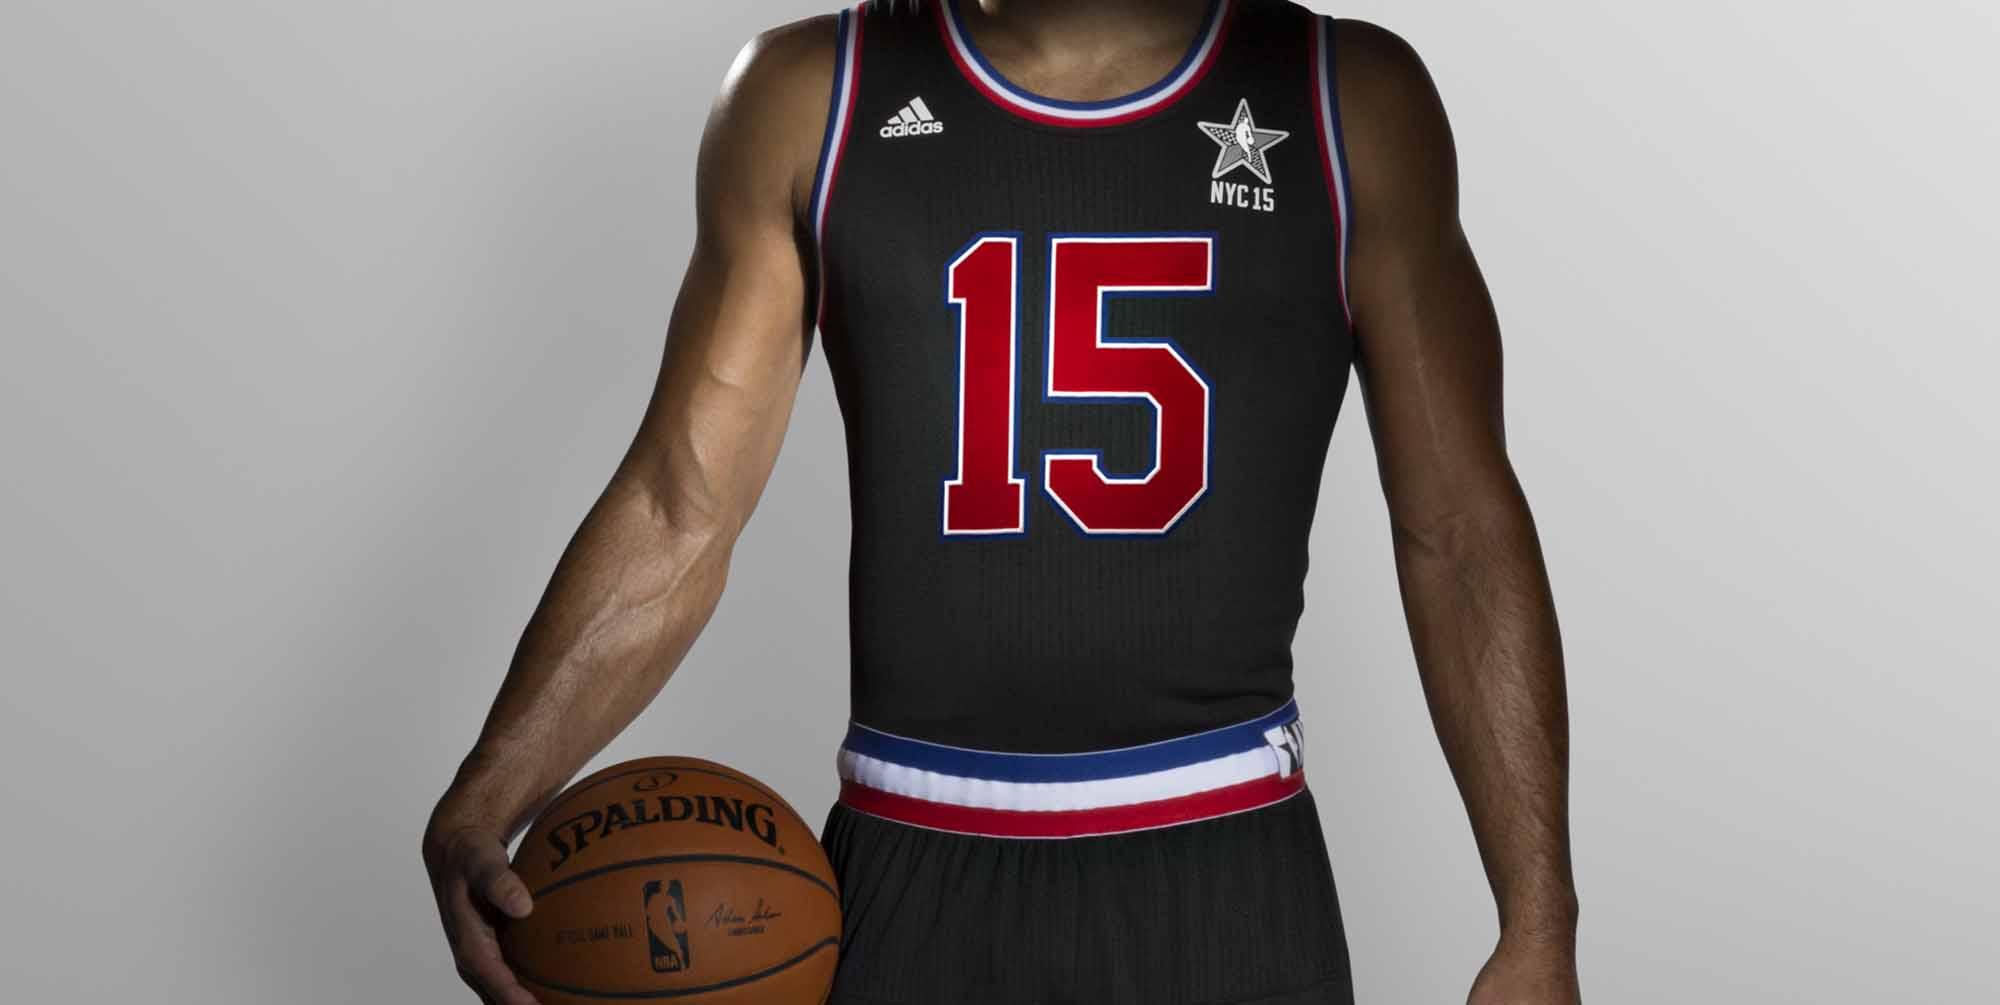 3486335cb 2015 NBA All Star Uniforms Inspired By NYC Basketball Culture ...